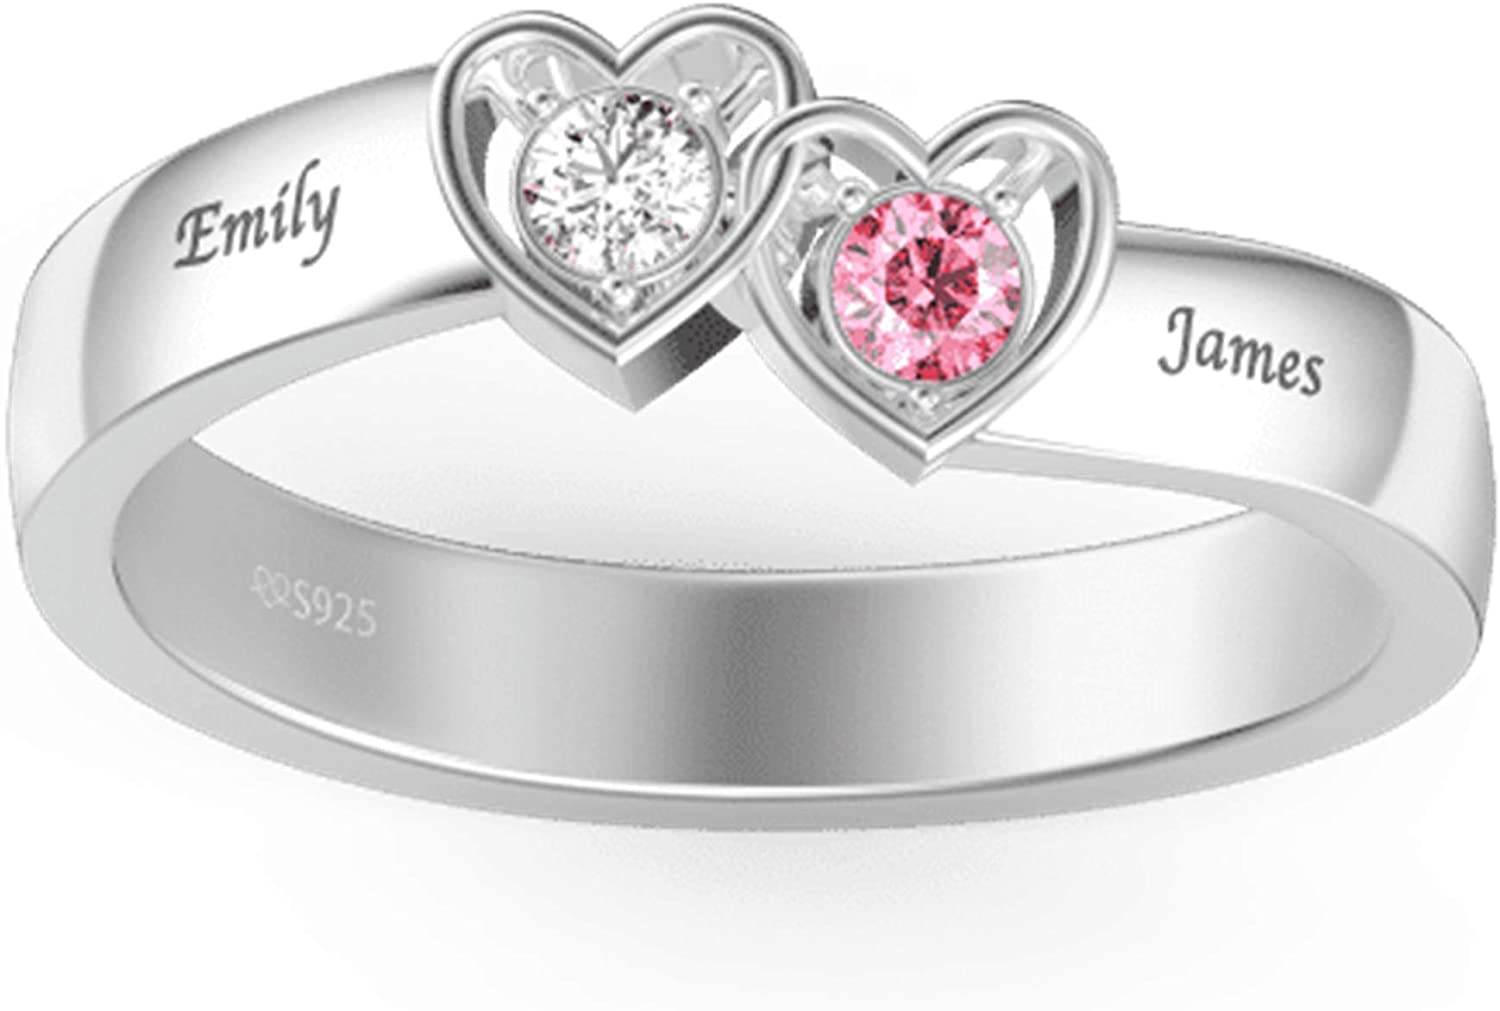 Personalized Mothers Ring with 2 Simulated Birthstones Sterling Silver Family Name Rings Custom Couple Engagement Rings for Her